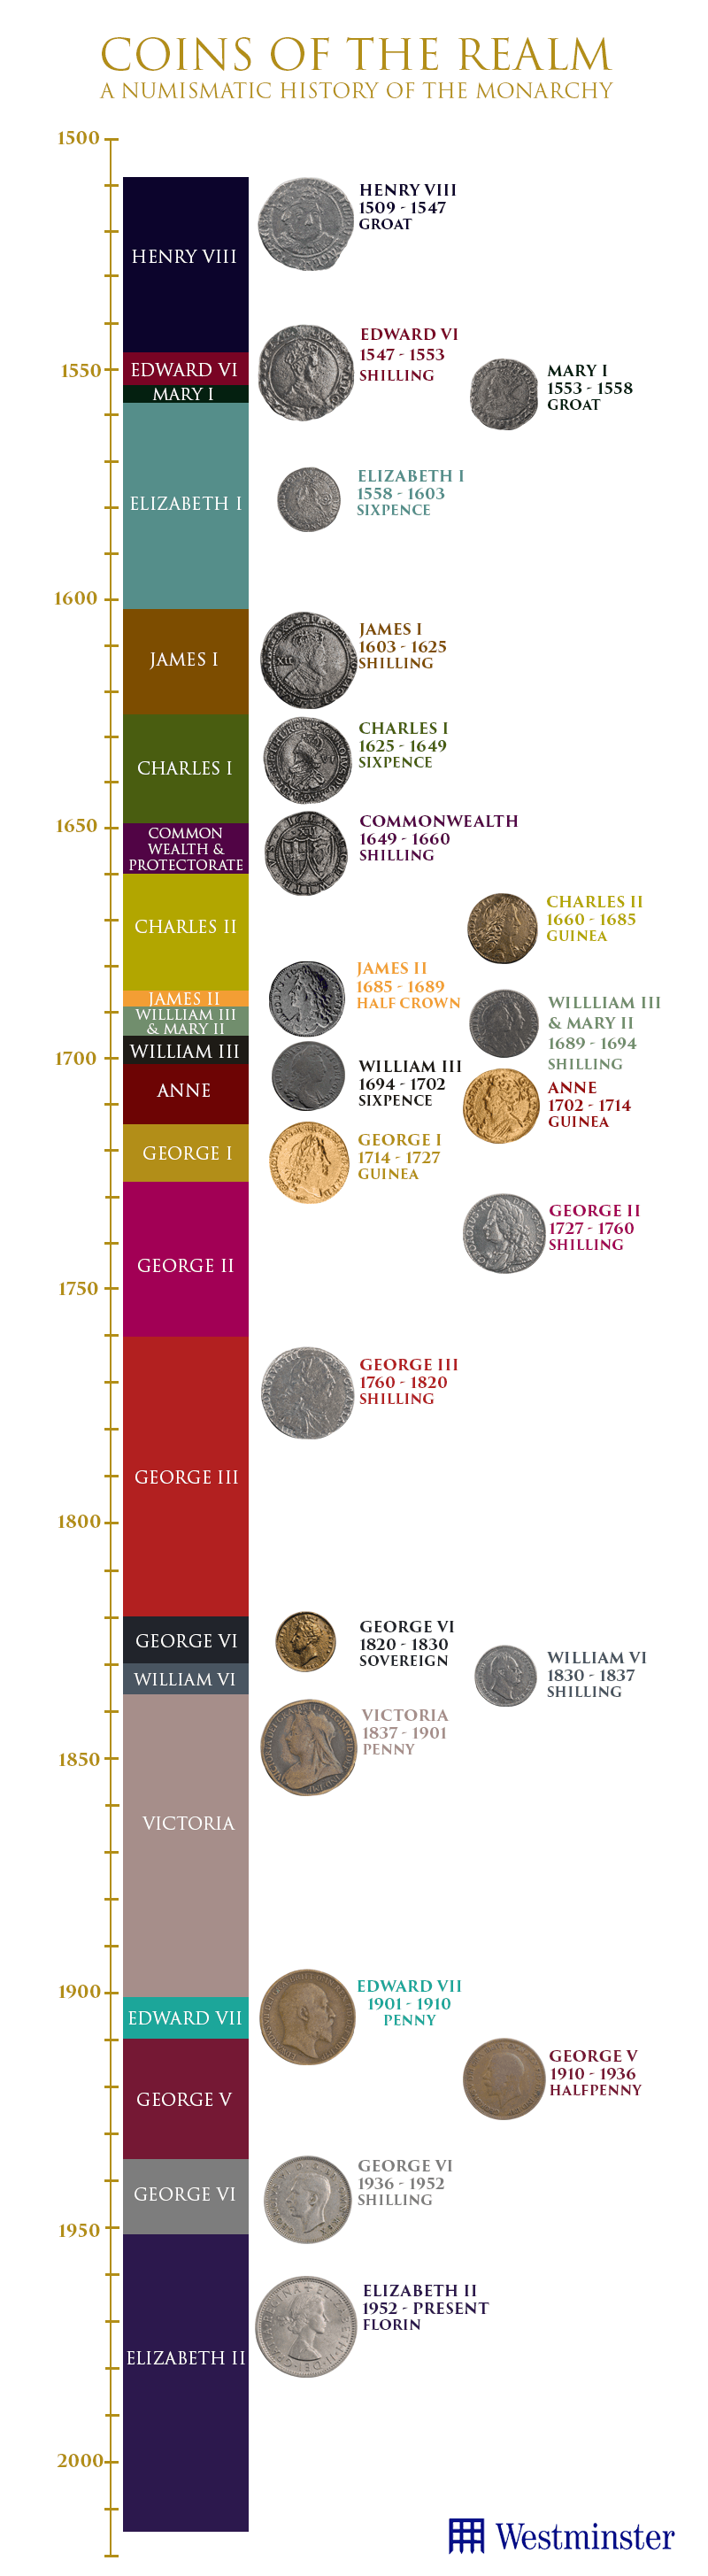 new coins of the realm version 23 1 - Coins of the Realm Timeline